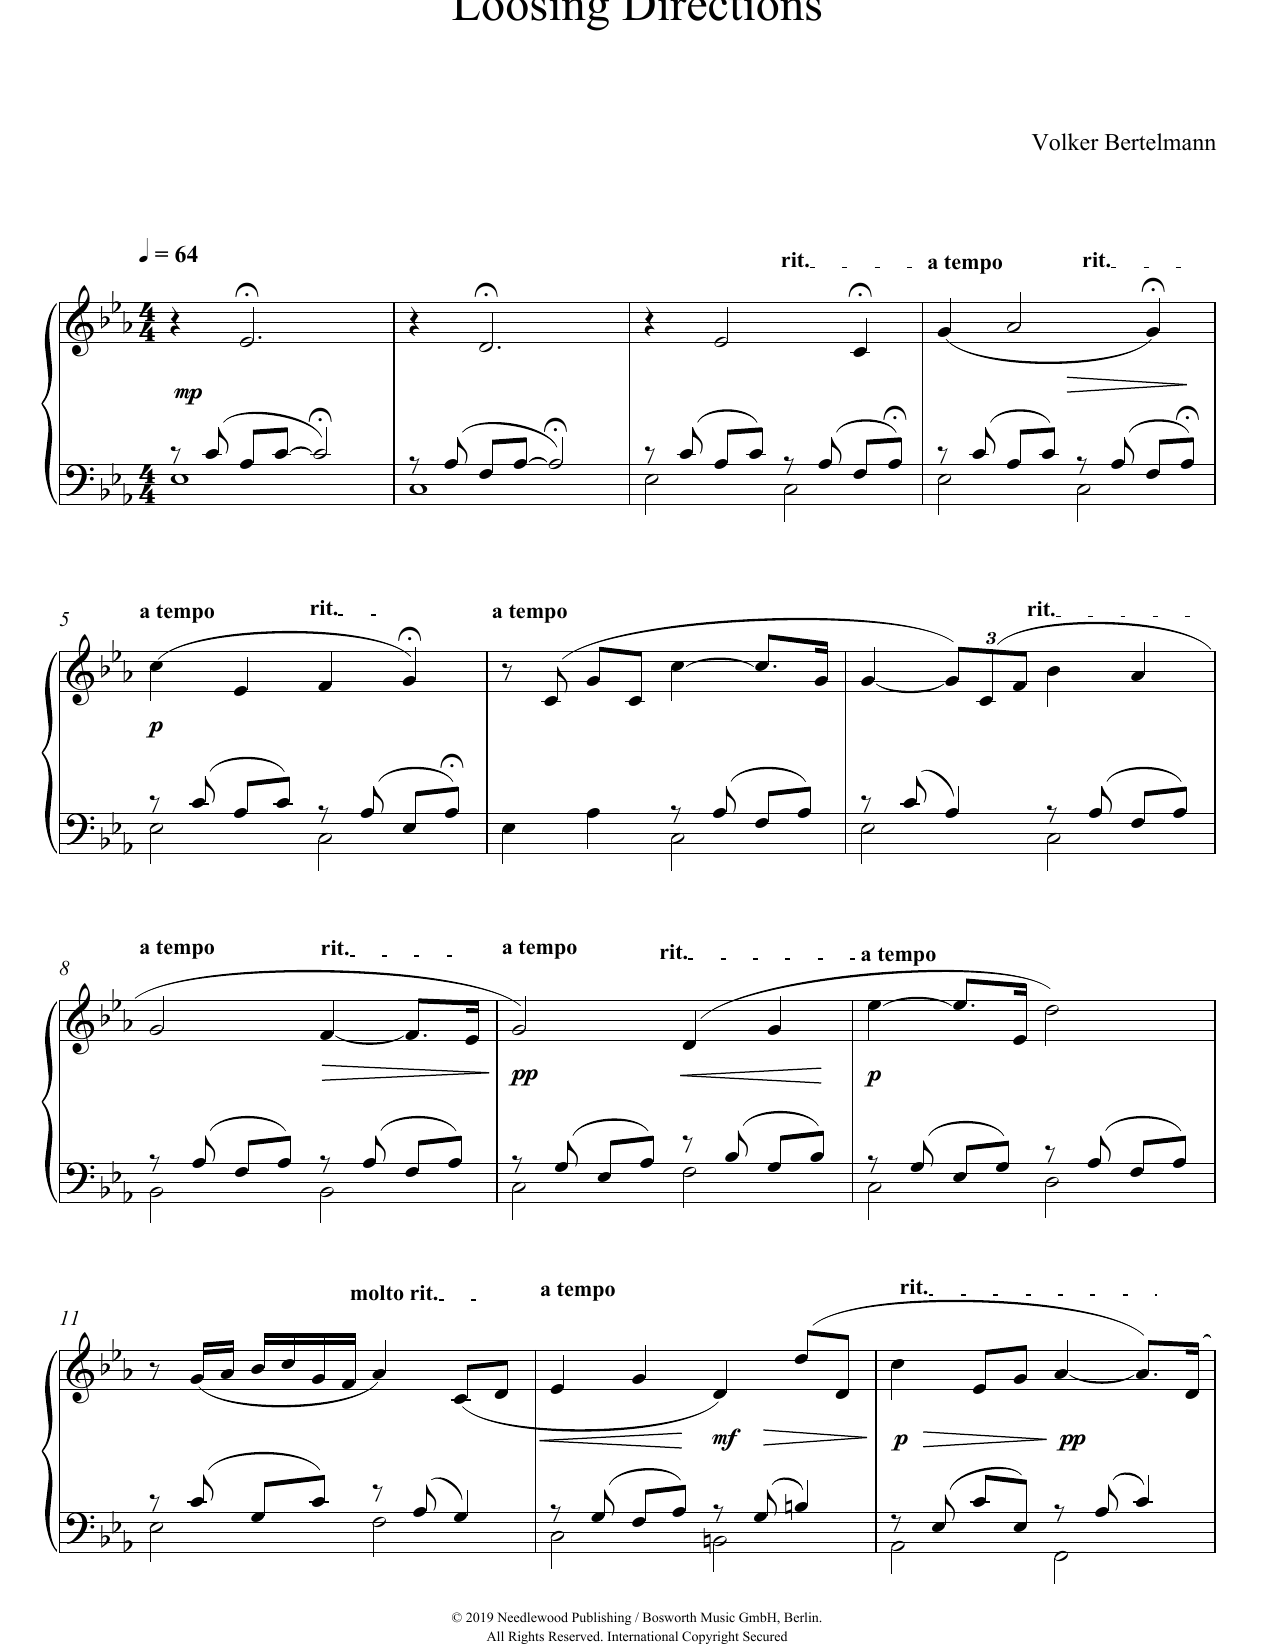 Hauschka Loosing Directions sheet music notes and chords. Download Printable PDF.